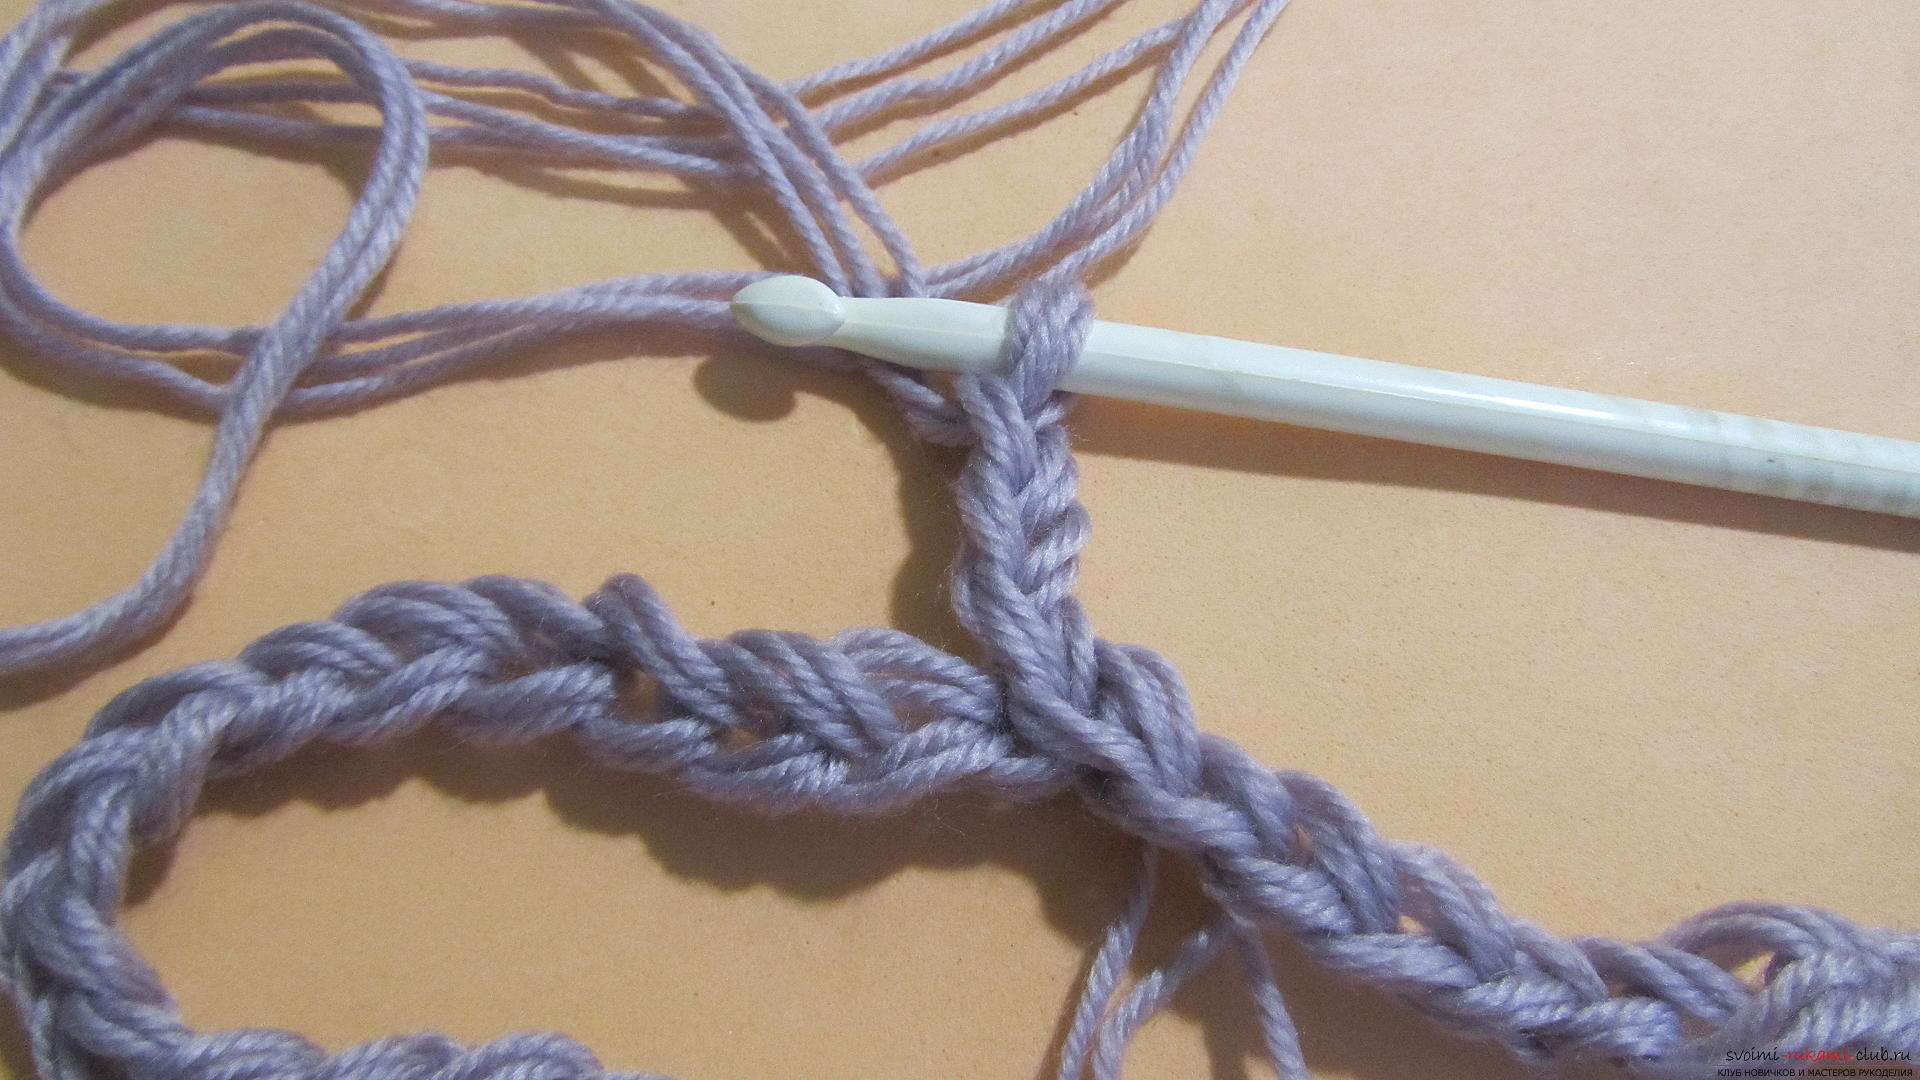 This detailed master class with a photo contains crochet snatch crochet patterns. Picture # 4